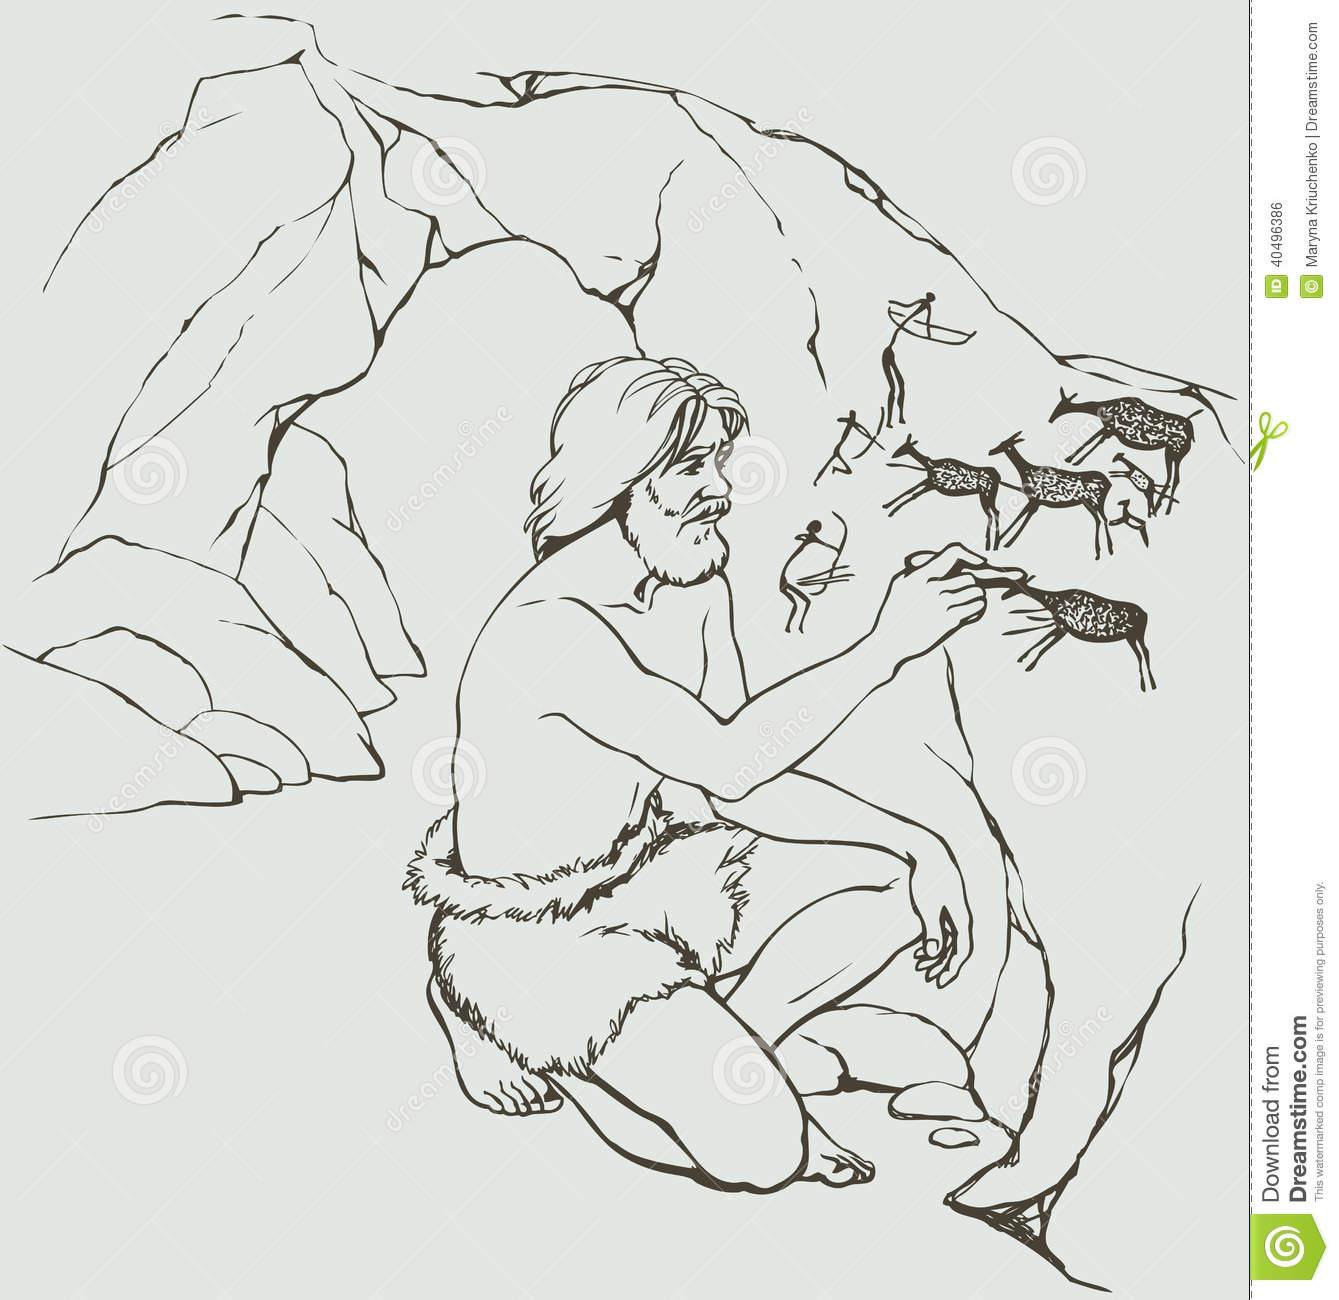 Vector Picture Primitive Man Draws On Stone Wall Of Cave Stock Illustration